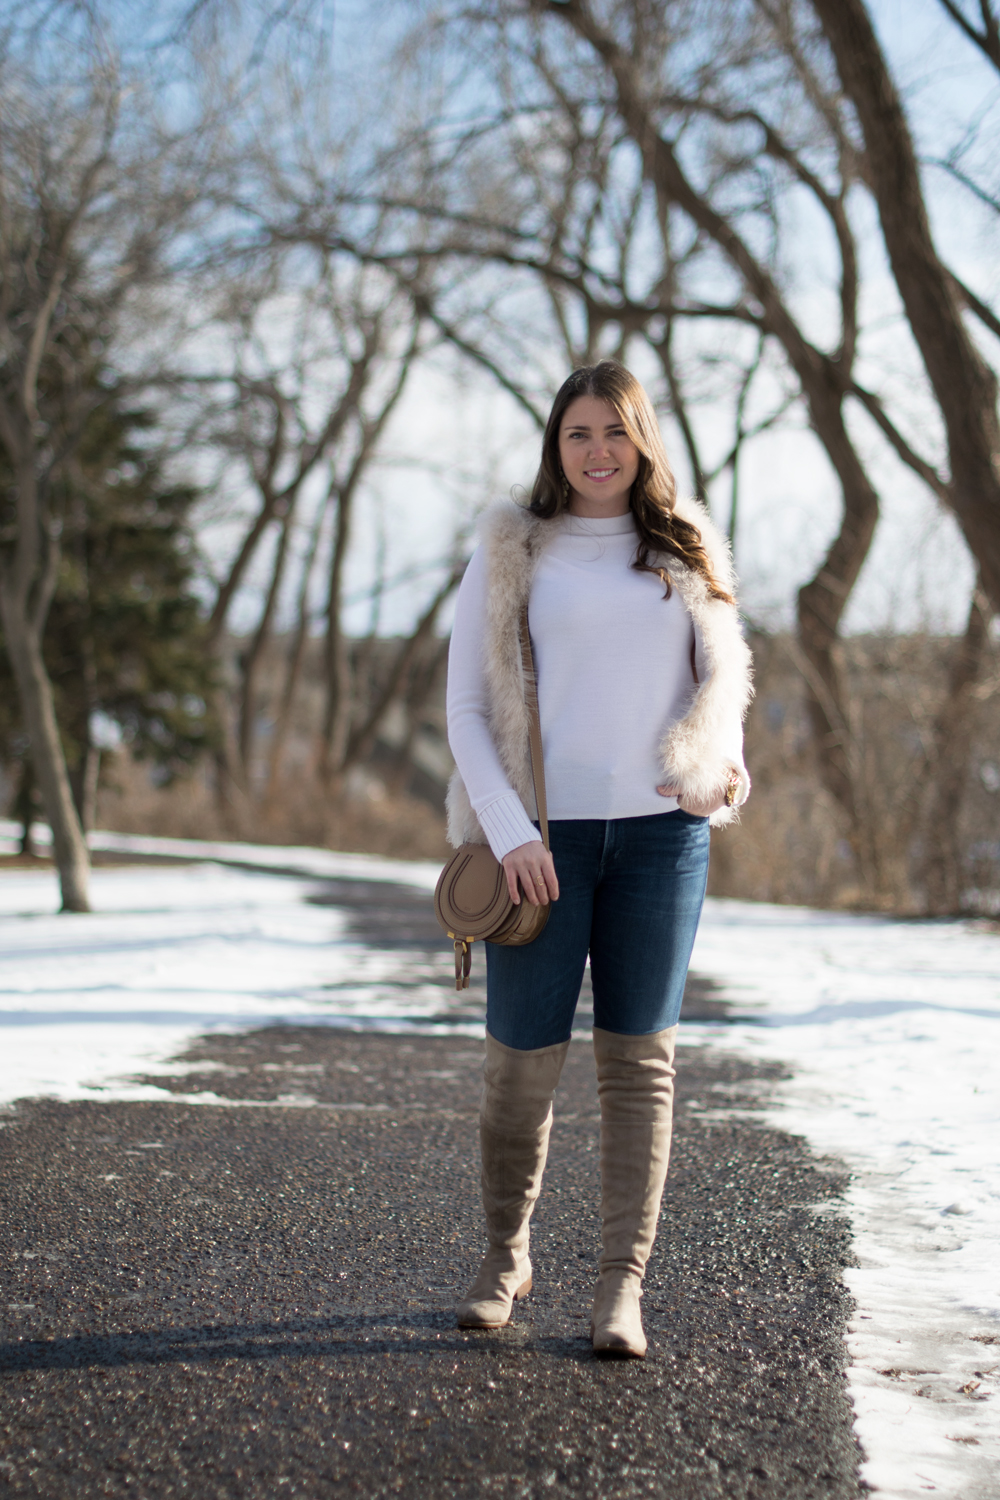 Winter white and neutral outfit on young woman.